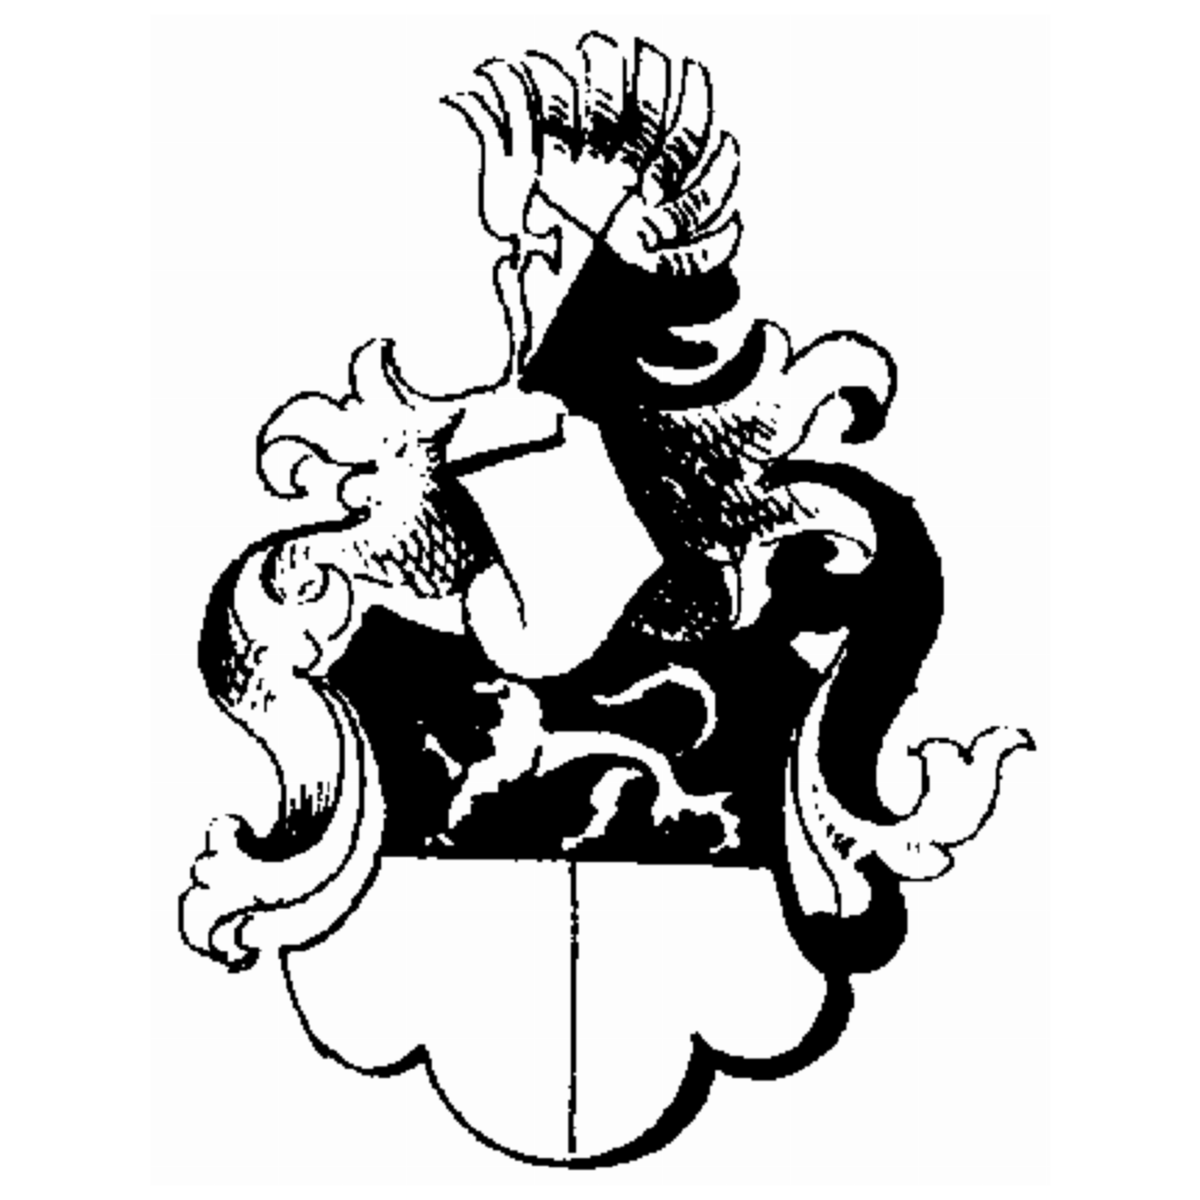 wiehl family heraldry genealogy coat of arms and last name origin